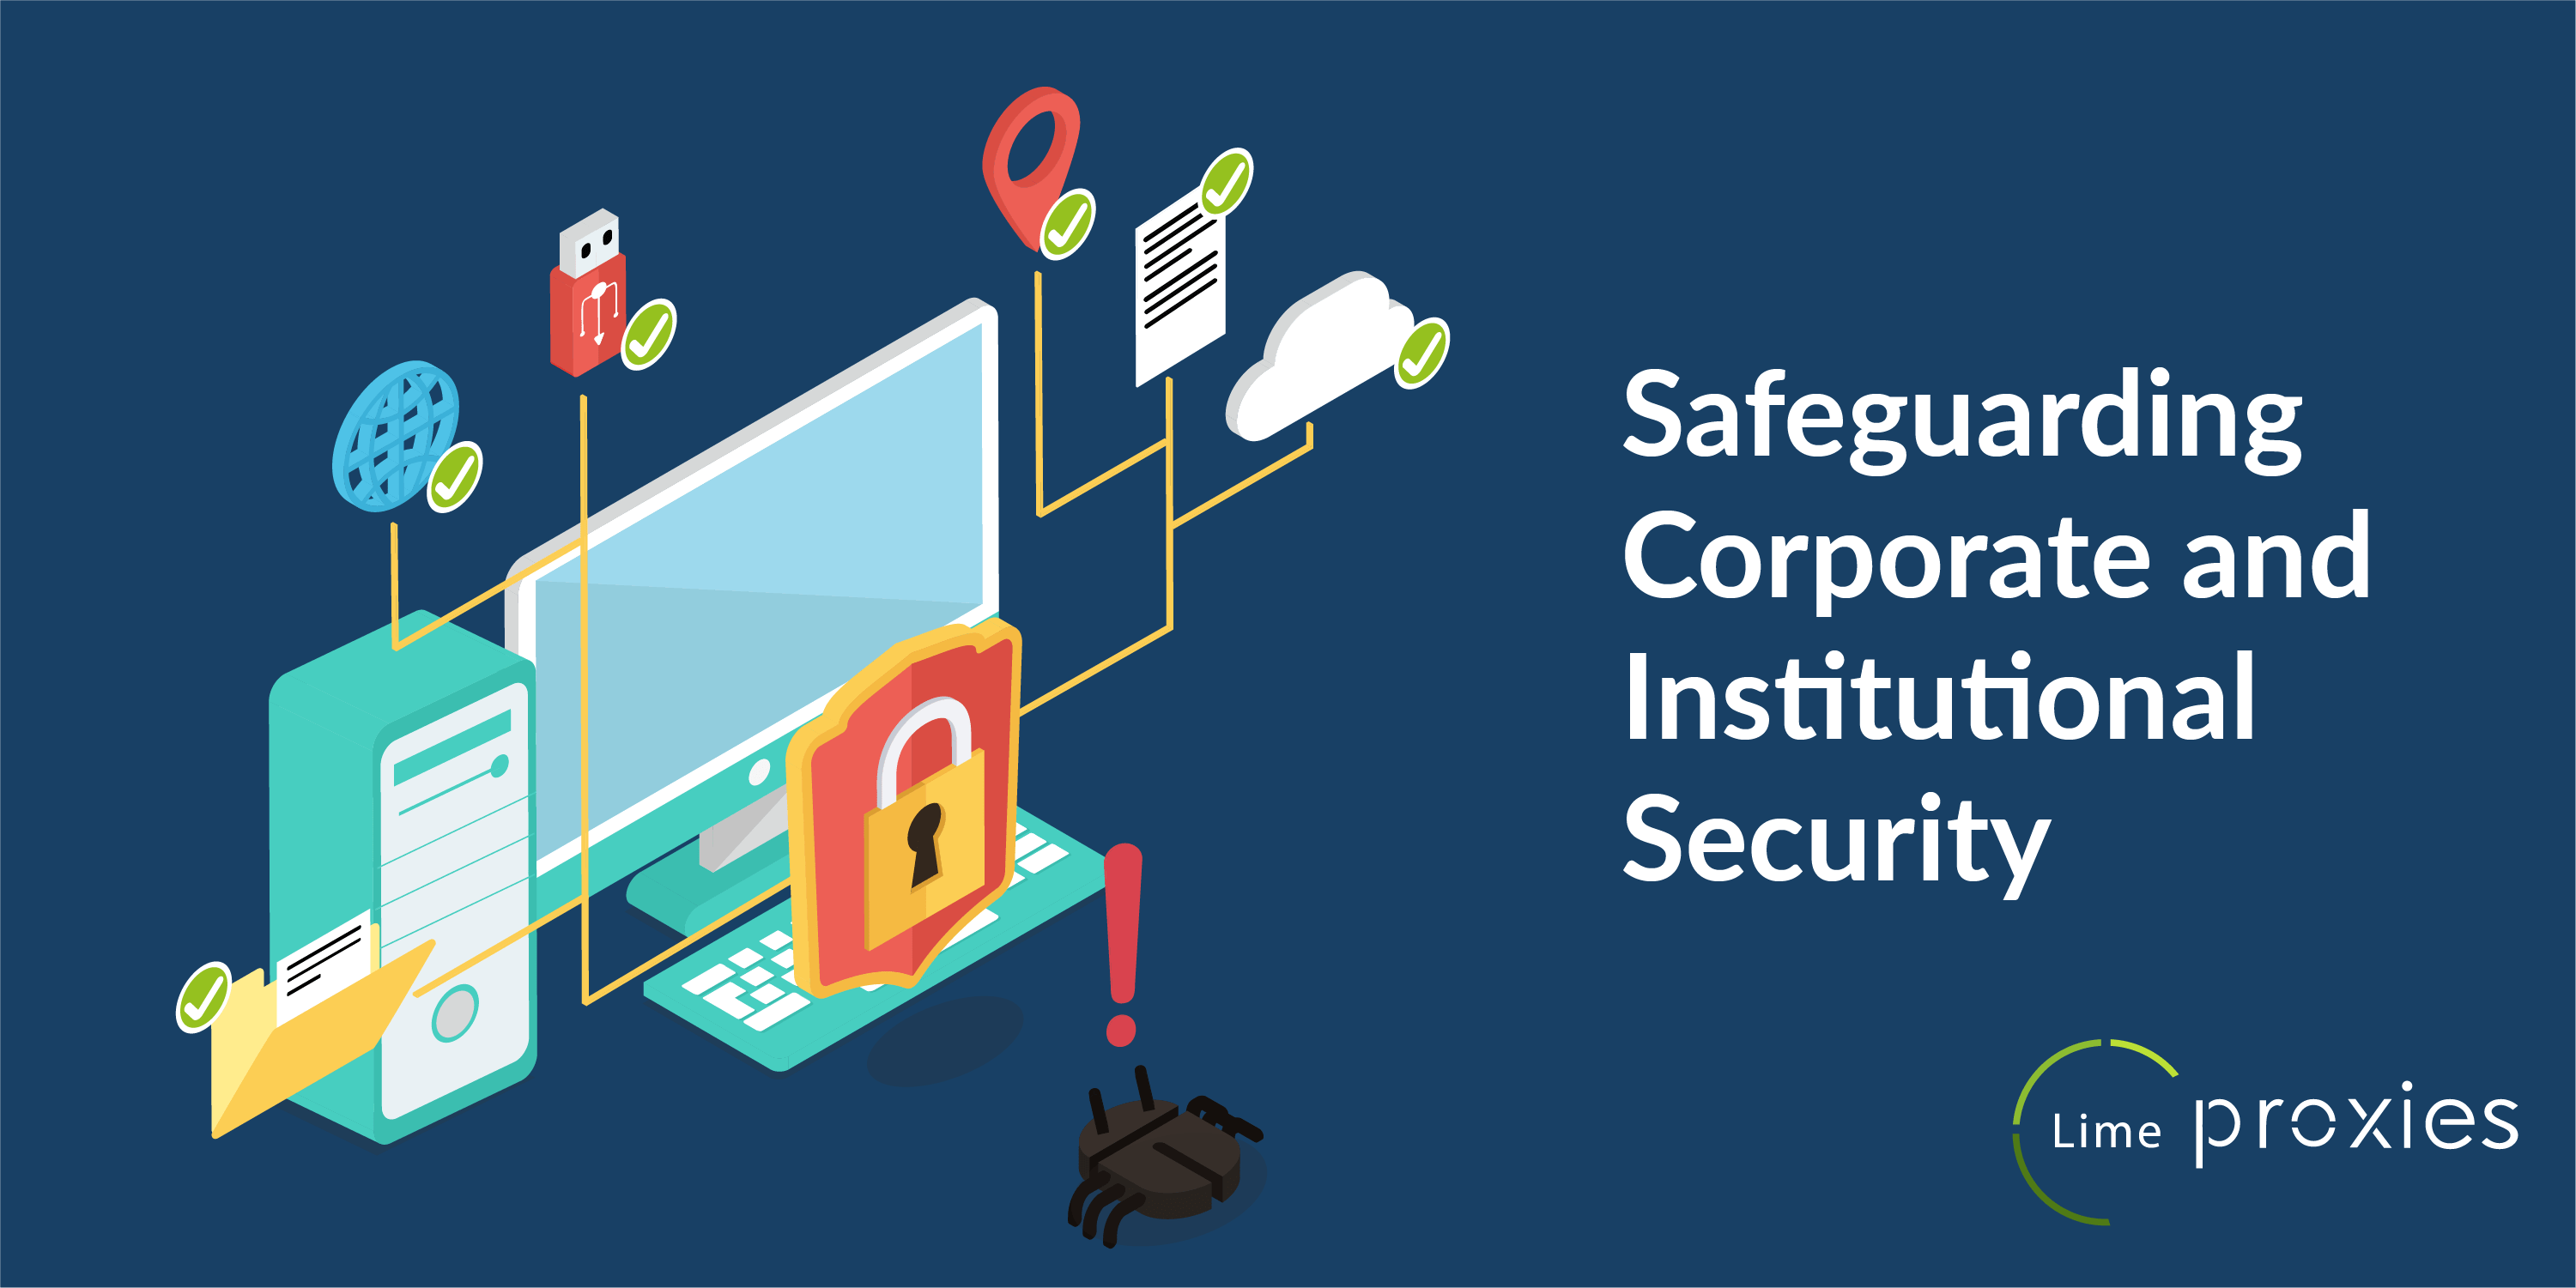 SAFEGUARDING CORPORATE AND INSTITUTIONAL SECURITY